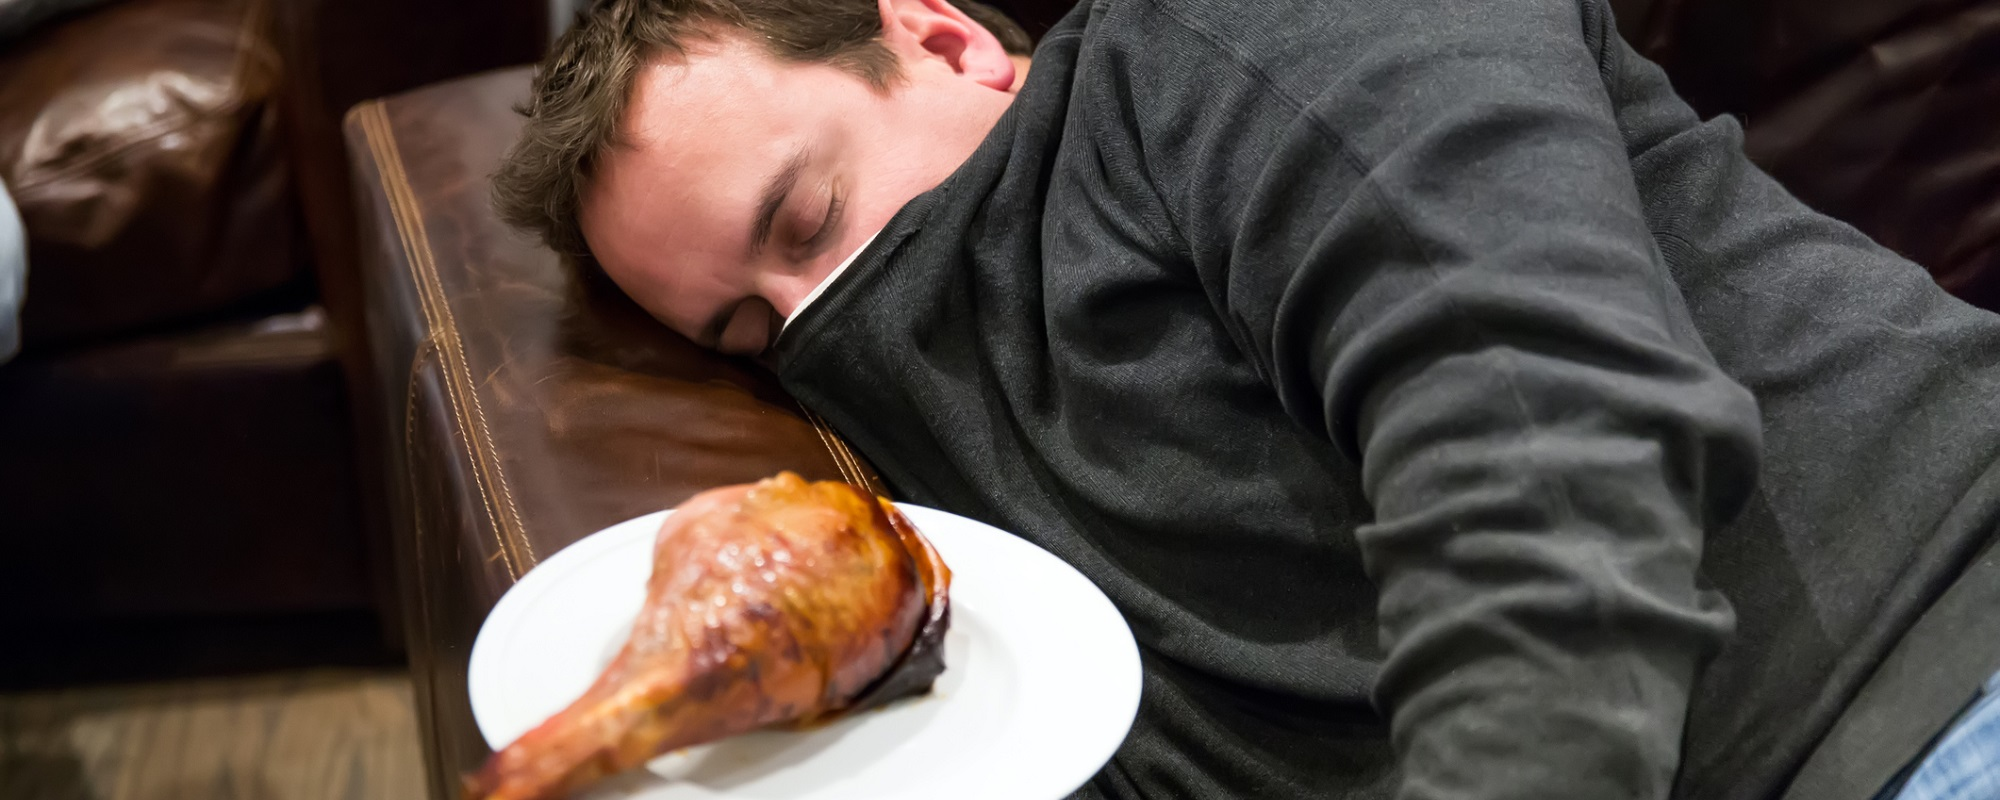 Turkey and Tryptophan: Melatonin or Myth?